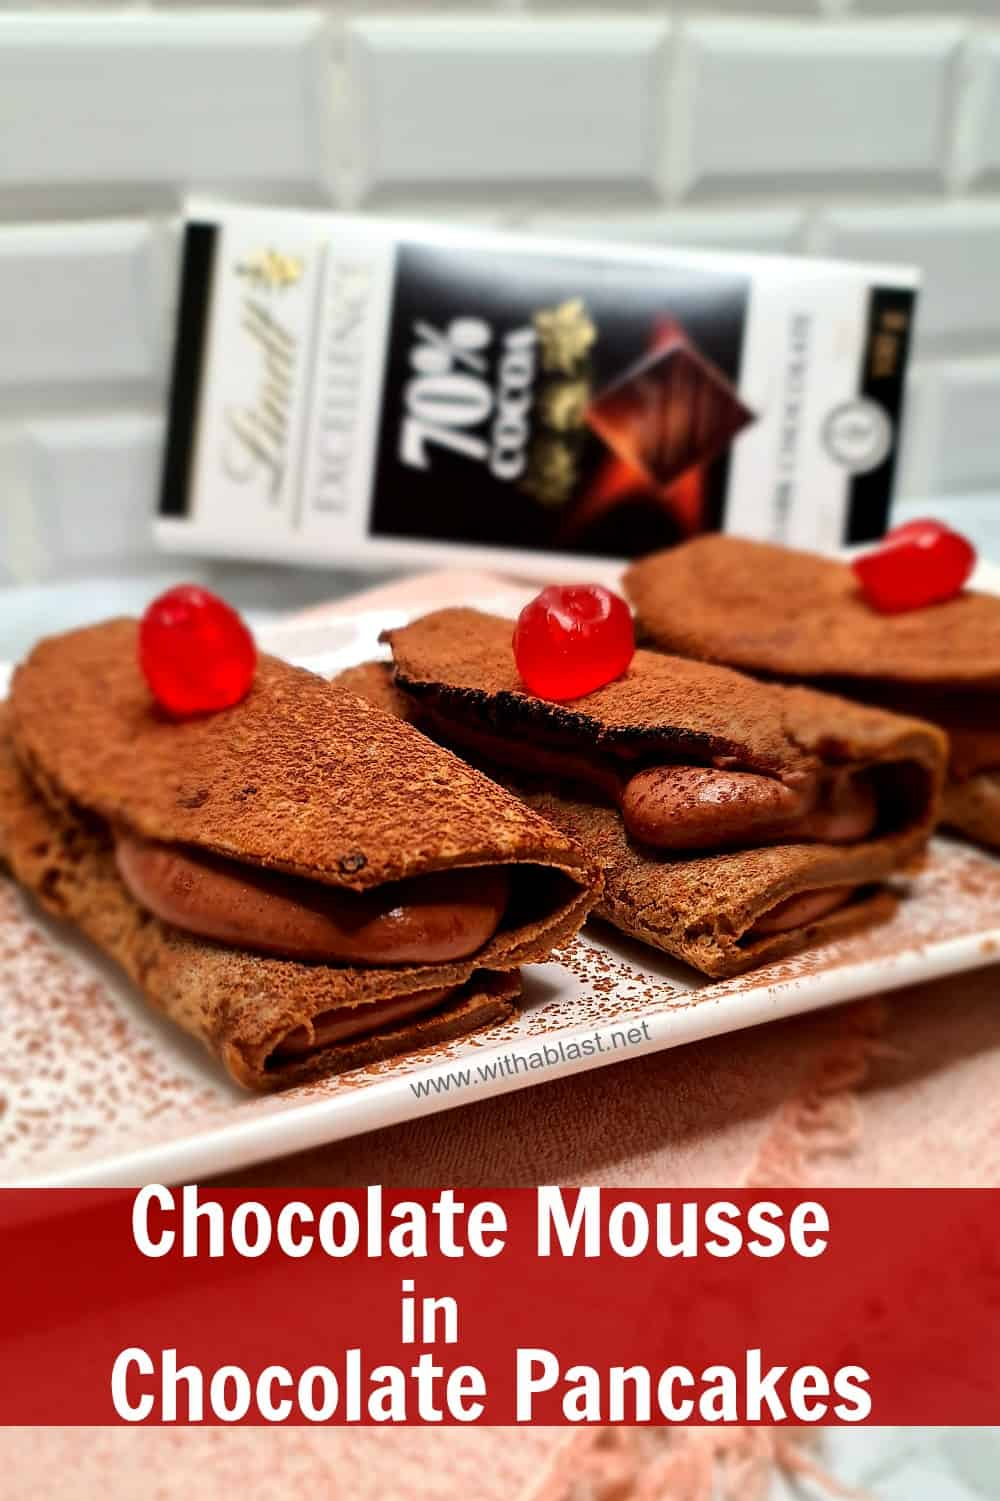 Chocolate Mousse in Chocolate Pancakes